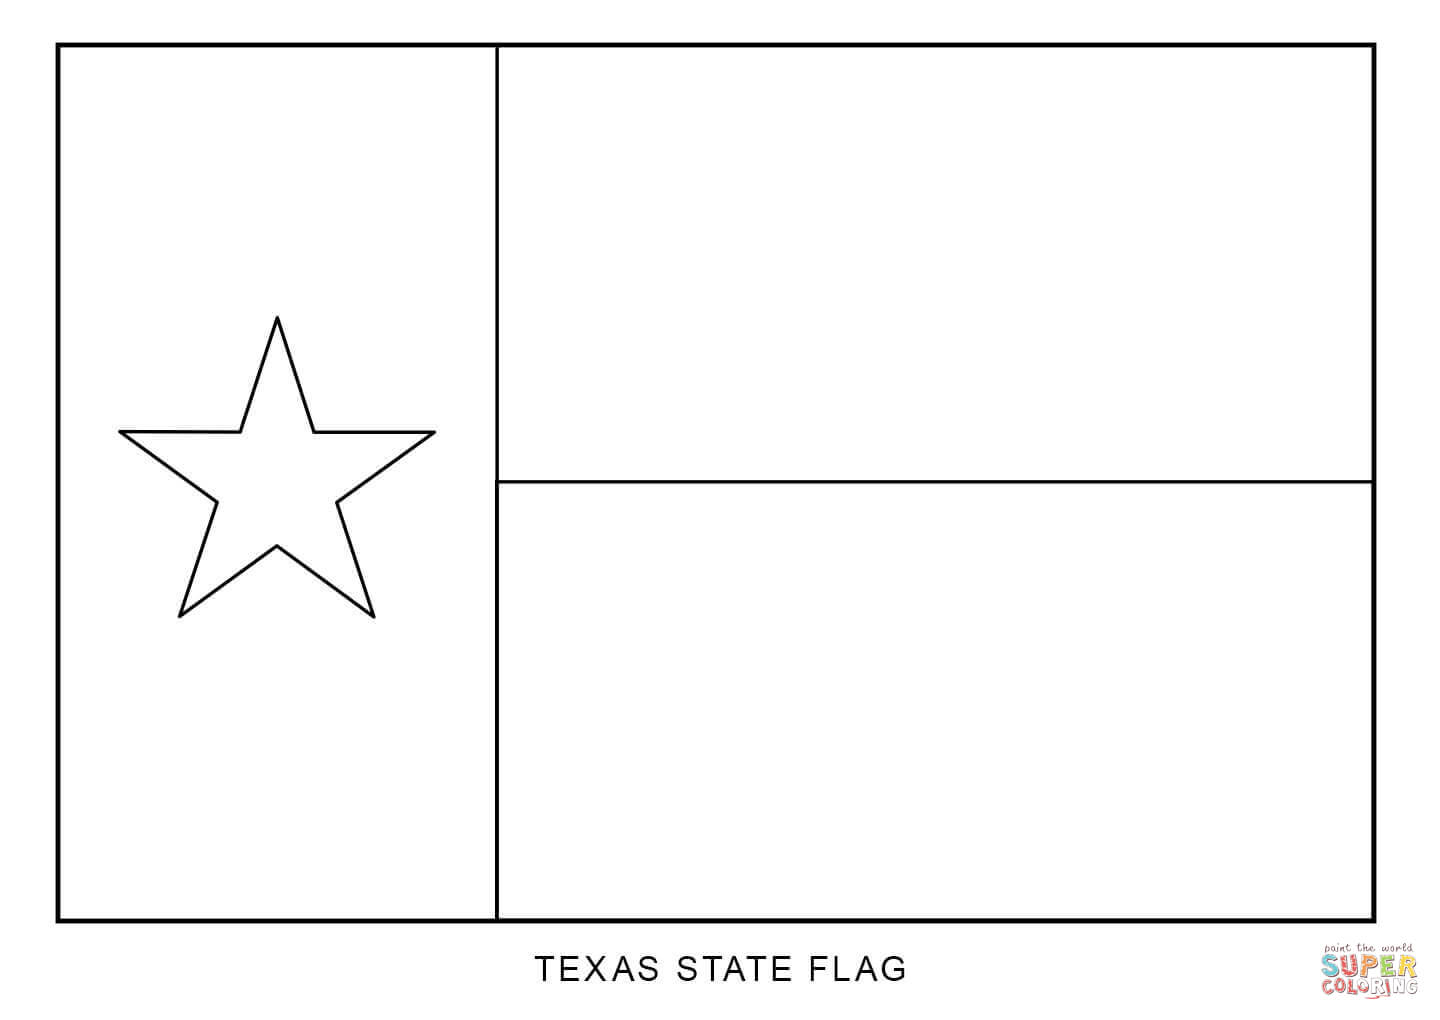 texas flag coloring page texas state flag coloring page free printable coloring pages page texas flag coloring